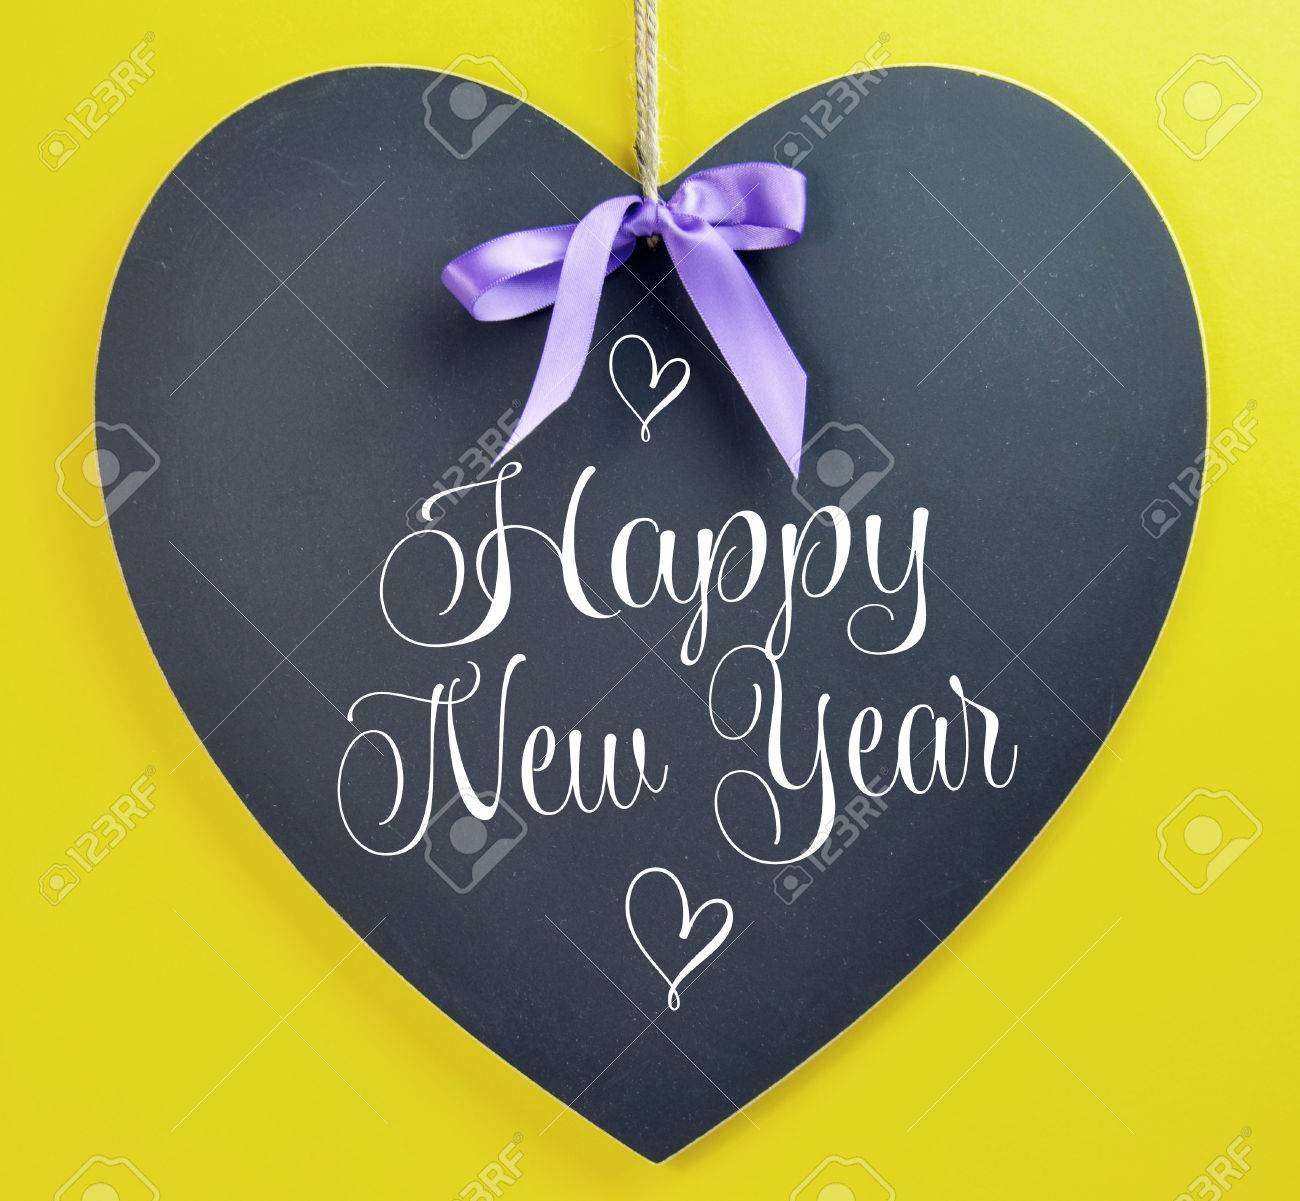 Happy New Year Message Greeting Written On Heart Shape Blackboard